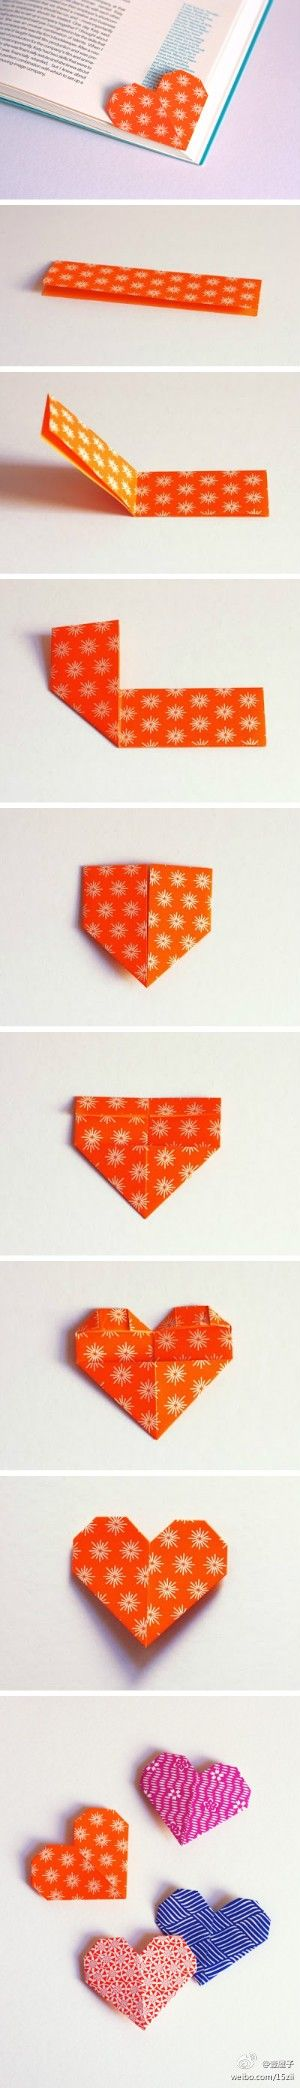 Heart-shaped page marker origam will make for valentine day since we don't really celebrate at school.